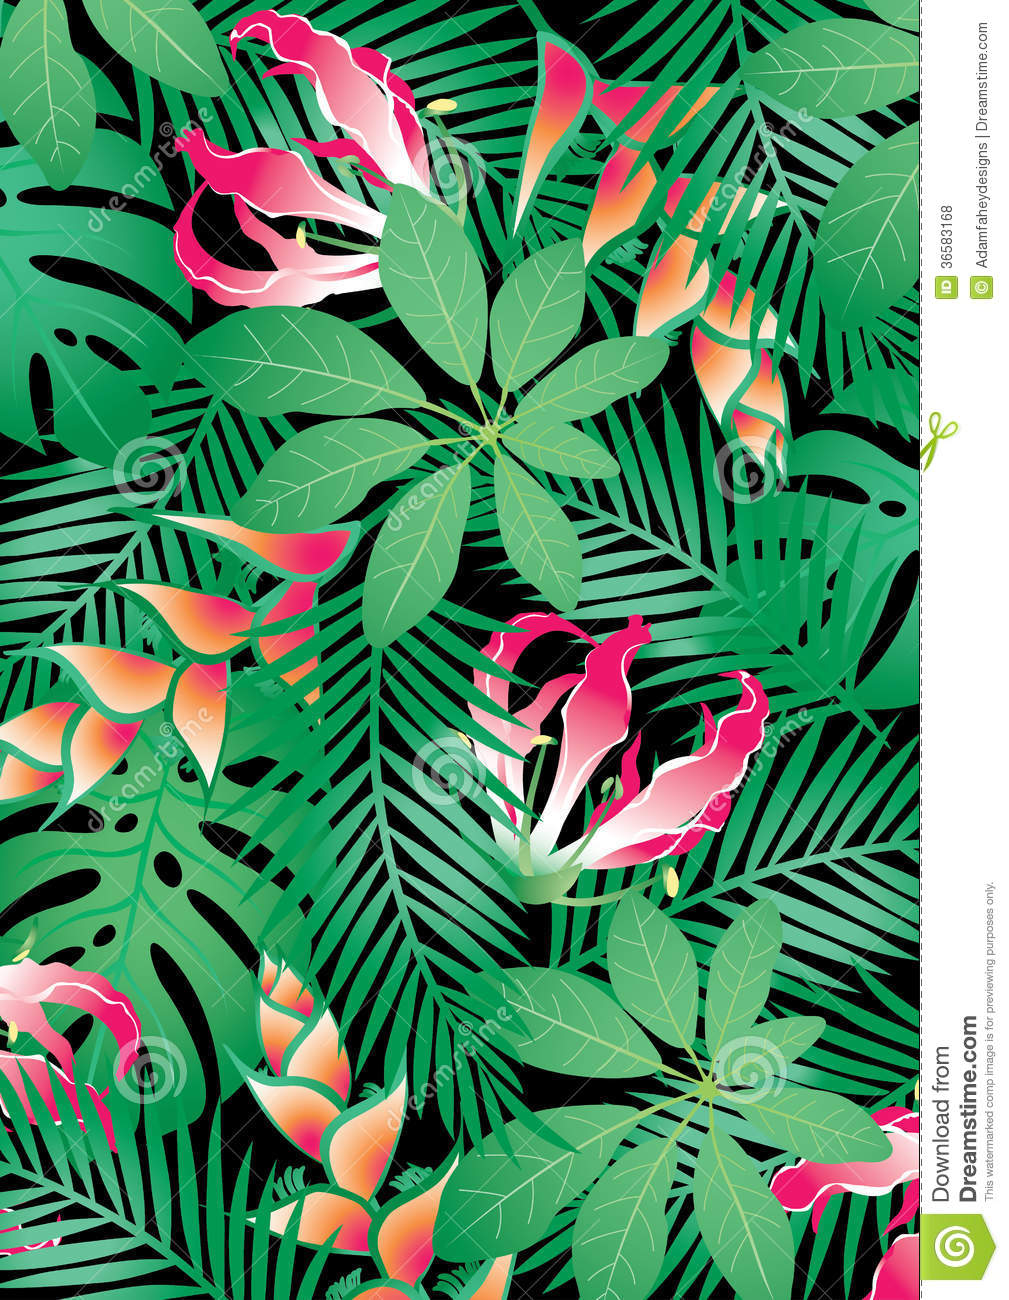 Tropical flowers pictures free royalty free Tropical Flowers Royalty Free Stock Photos - Image: 36583168 royalty free